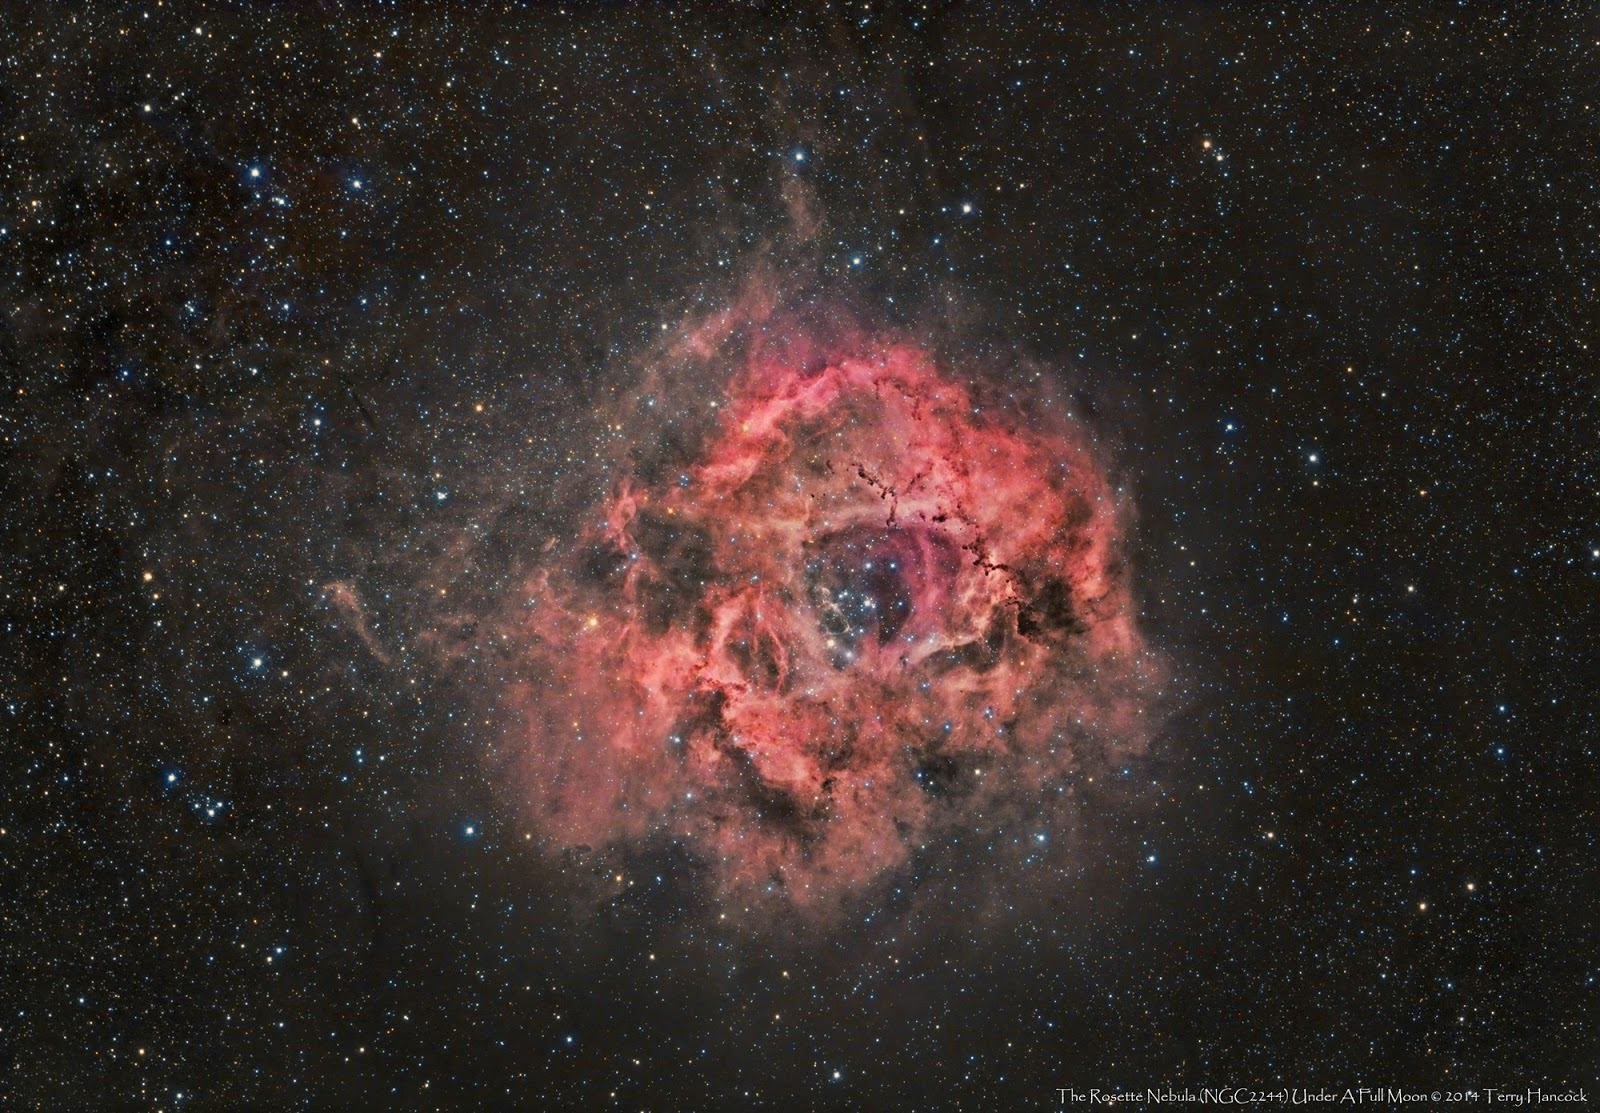 rosette-nebula-under-full-moon-hancock.jpg